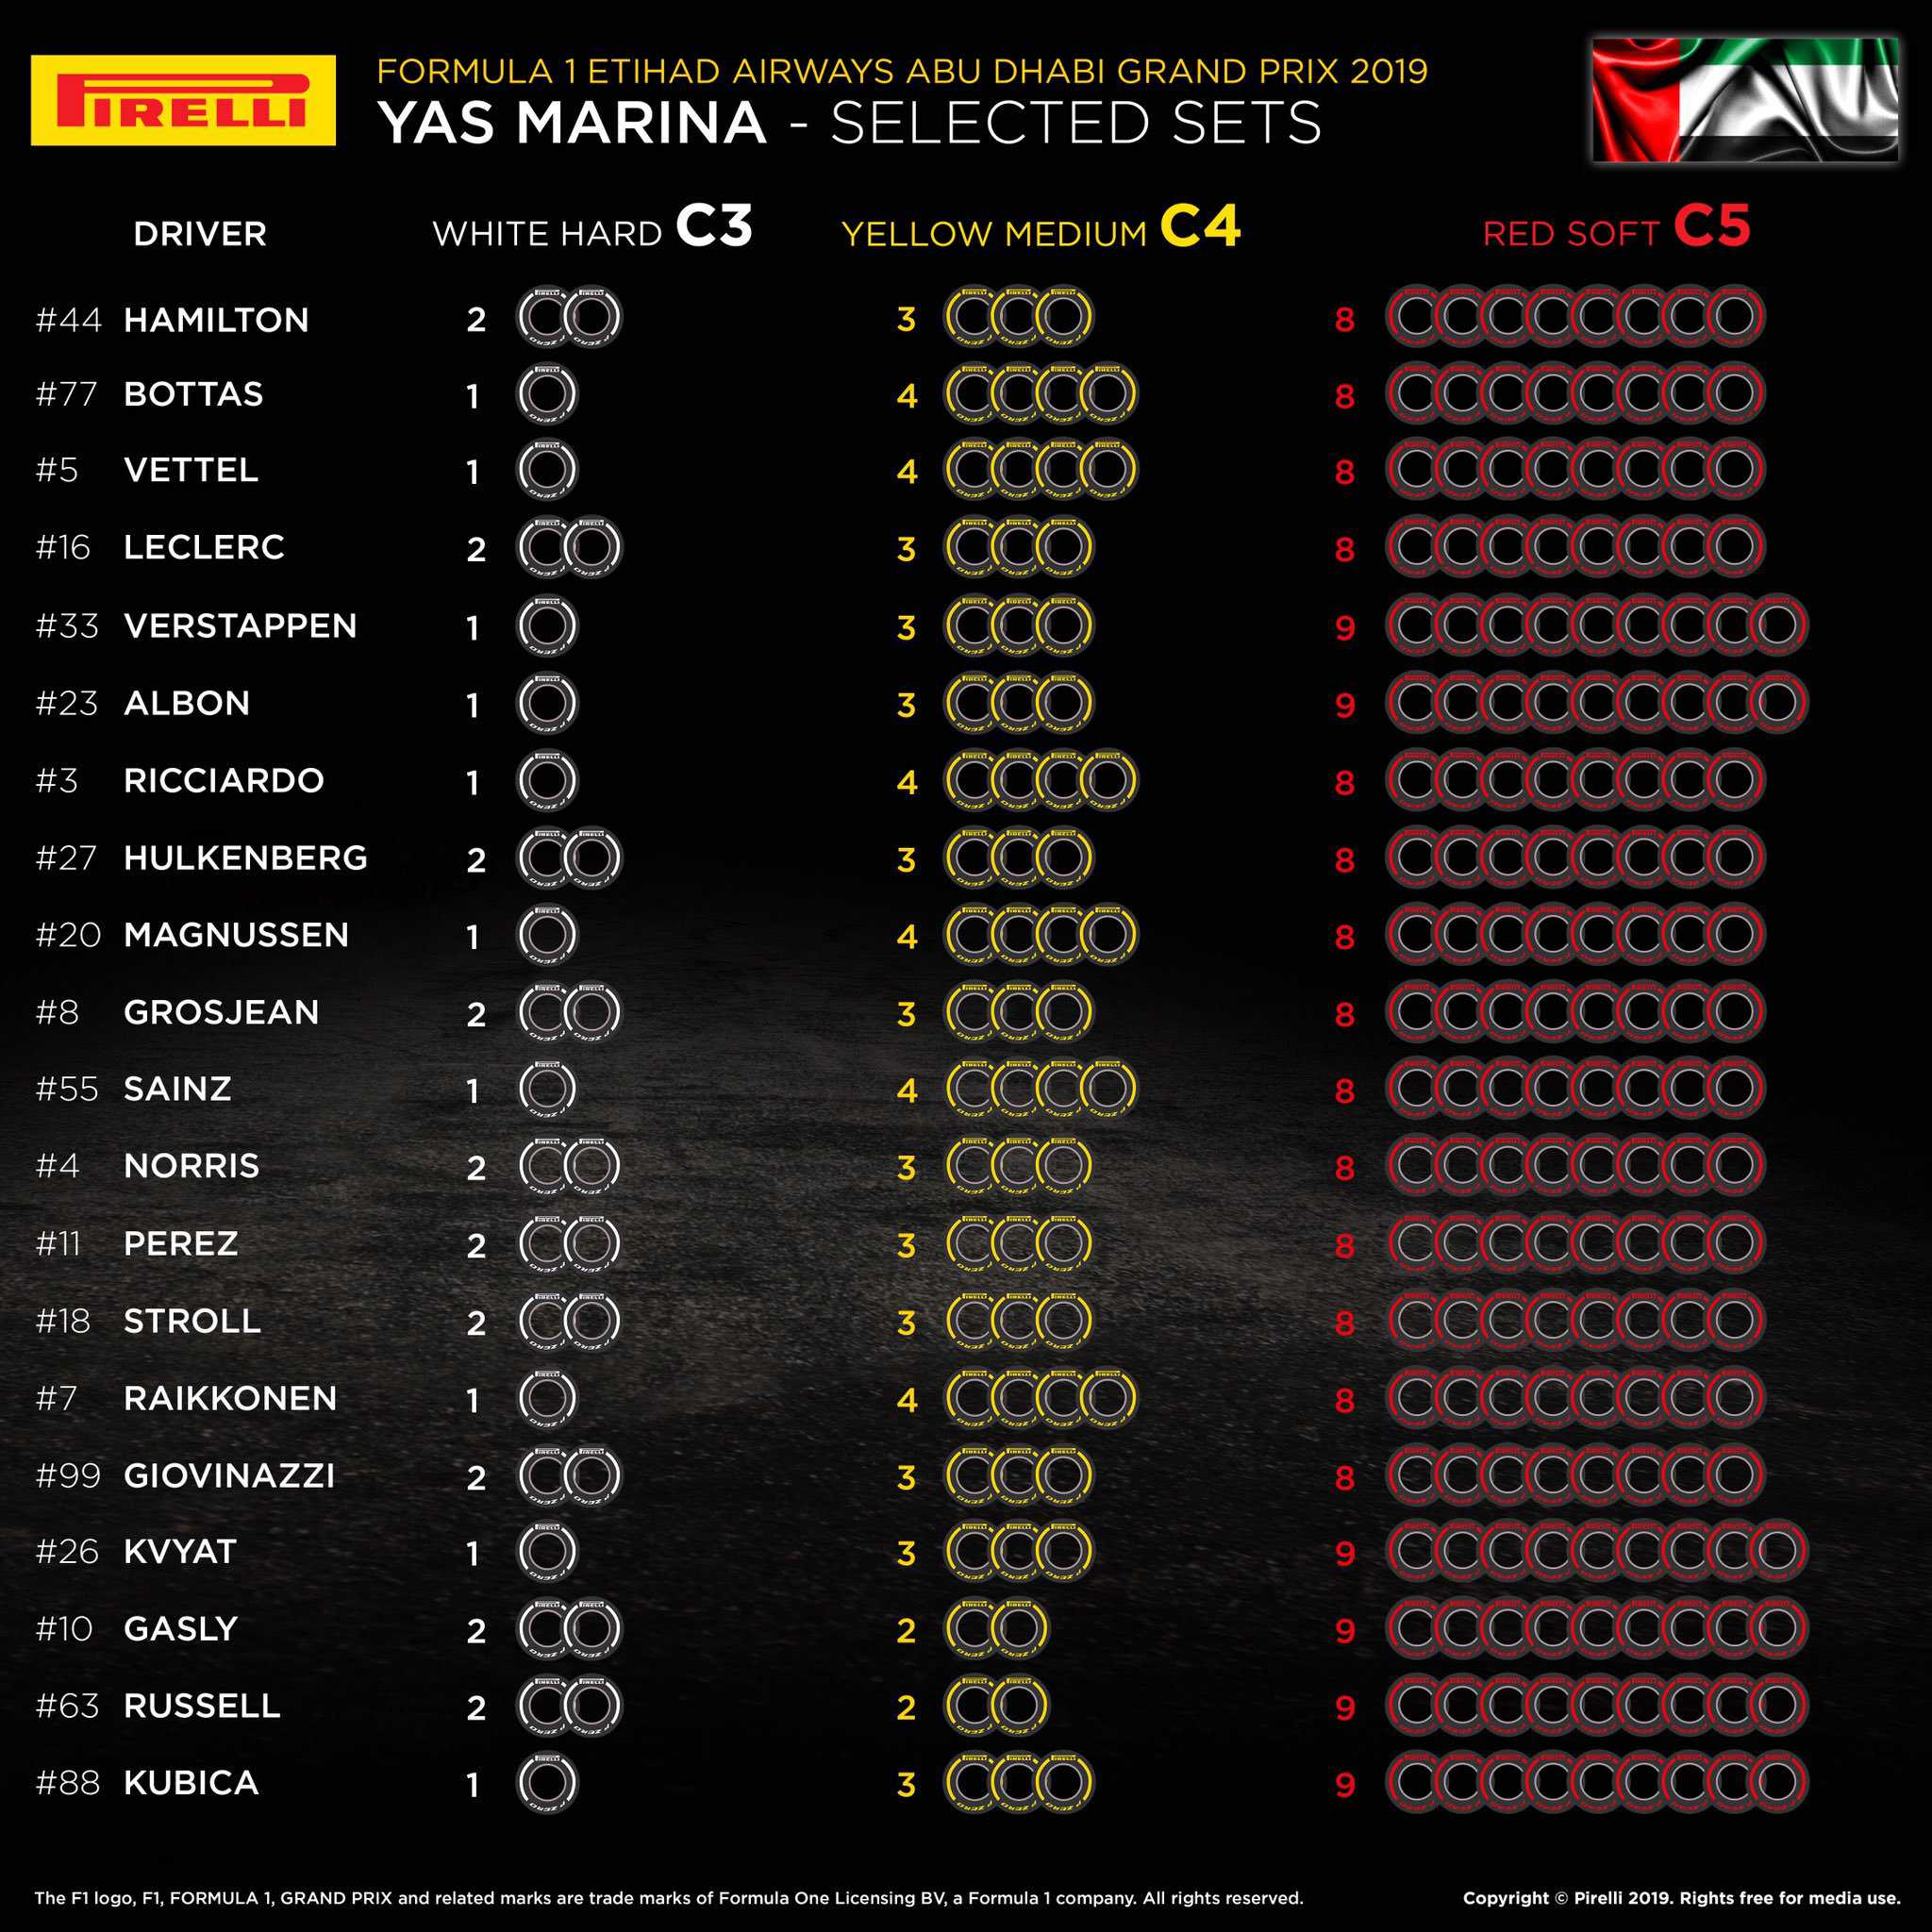 2019 Abu Dhabi GP selected tyre sets per driver Photo Pirelli